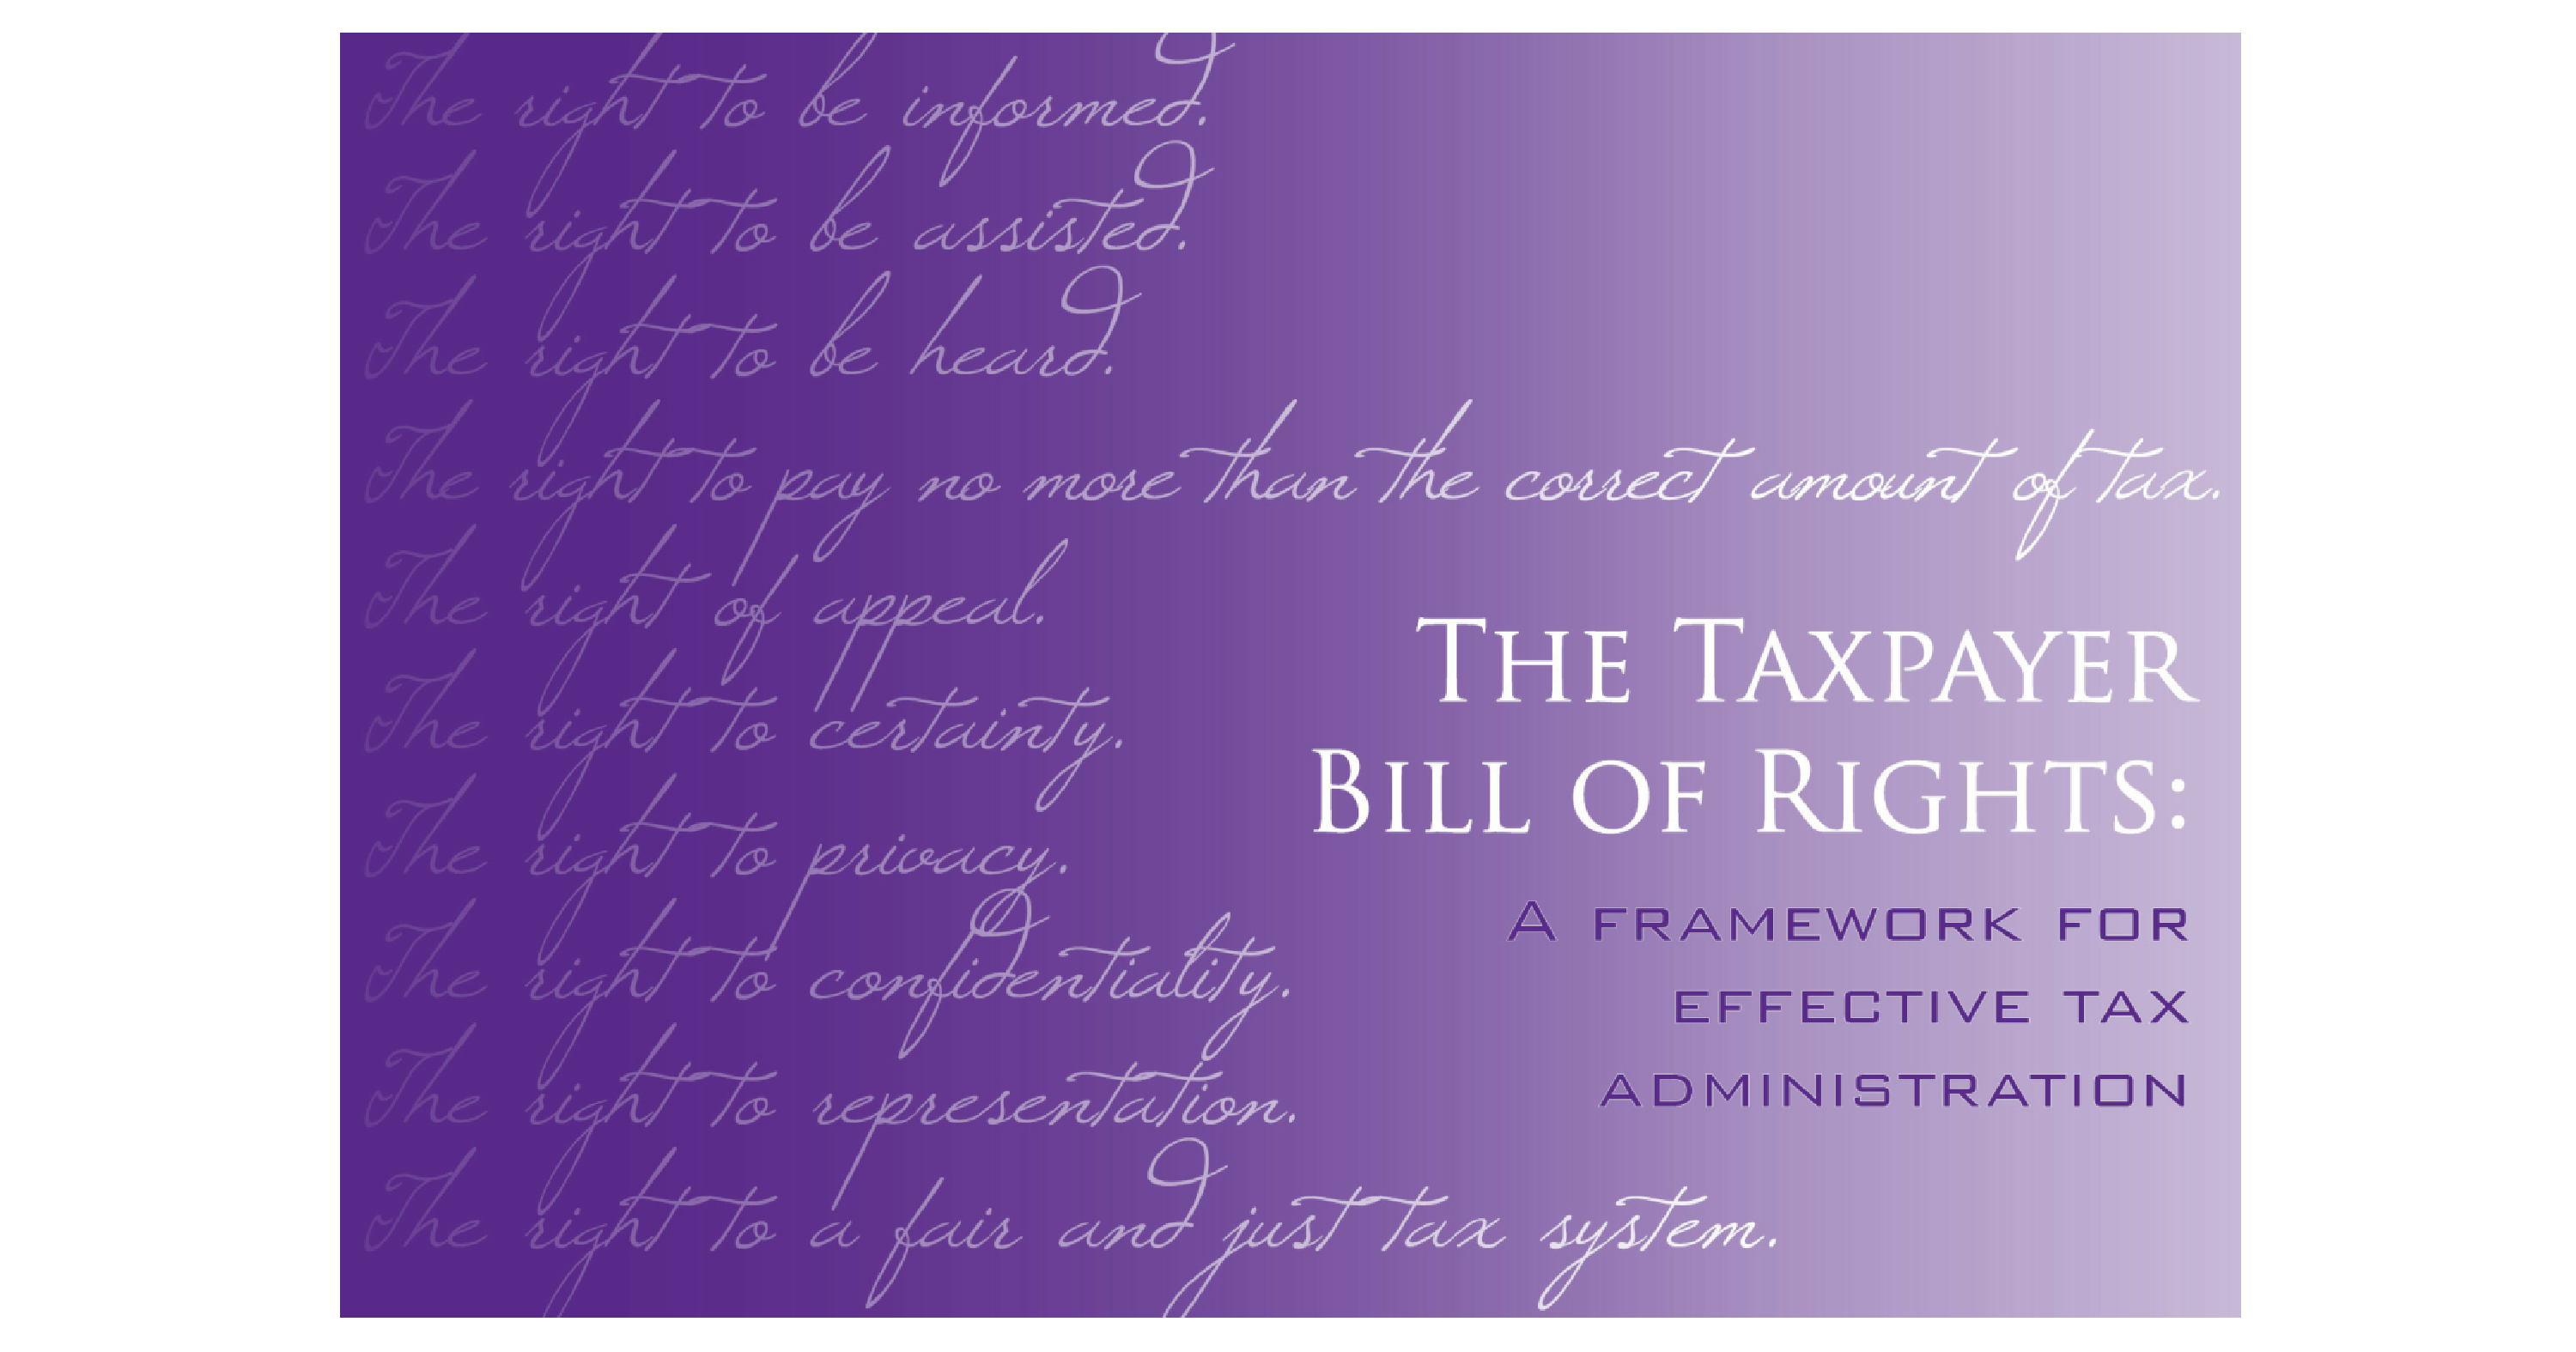 If You're Dealing with the IRS, Don't Forget Your Taxpayer Bill of Rights